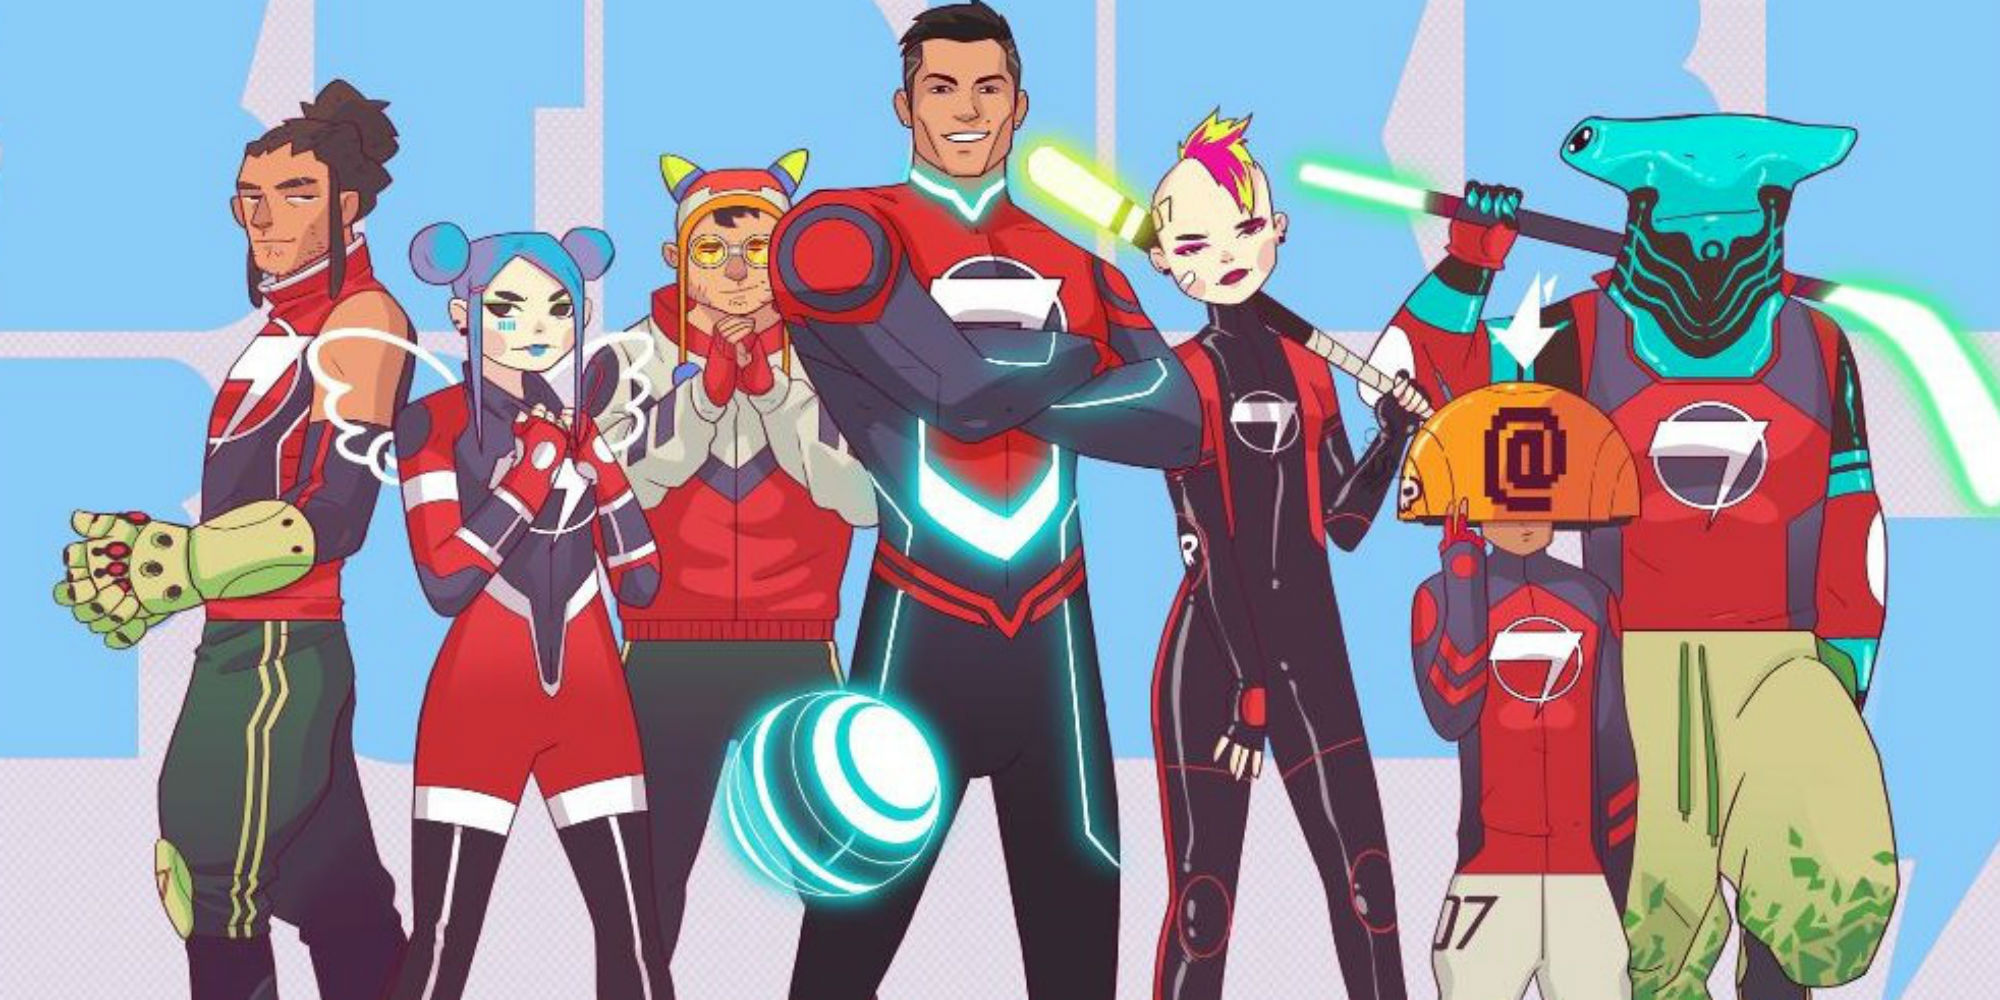 Cristiano Ronaldo diventa supereroe: arriva il cartoon Striker Force 7